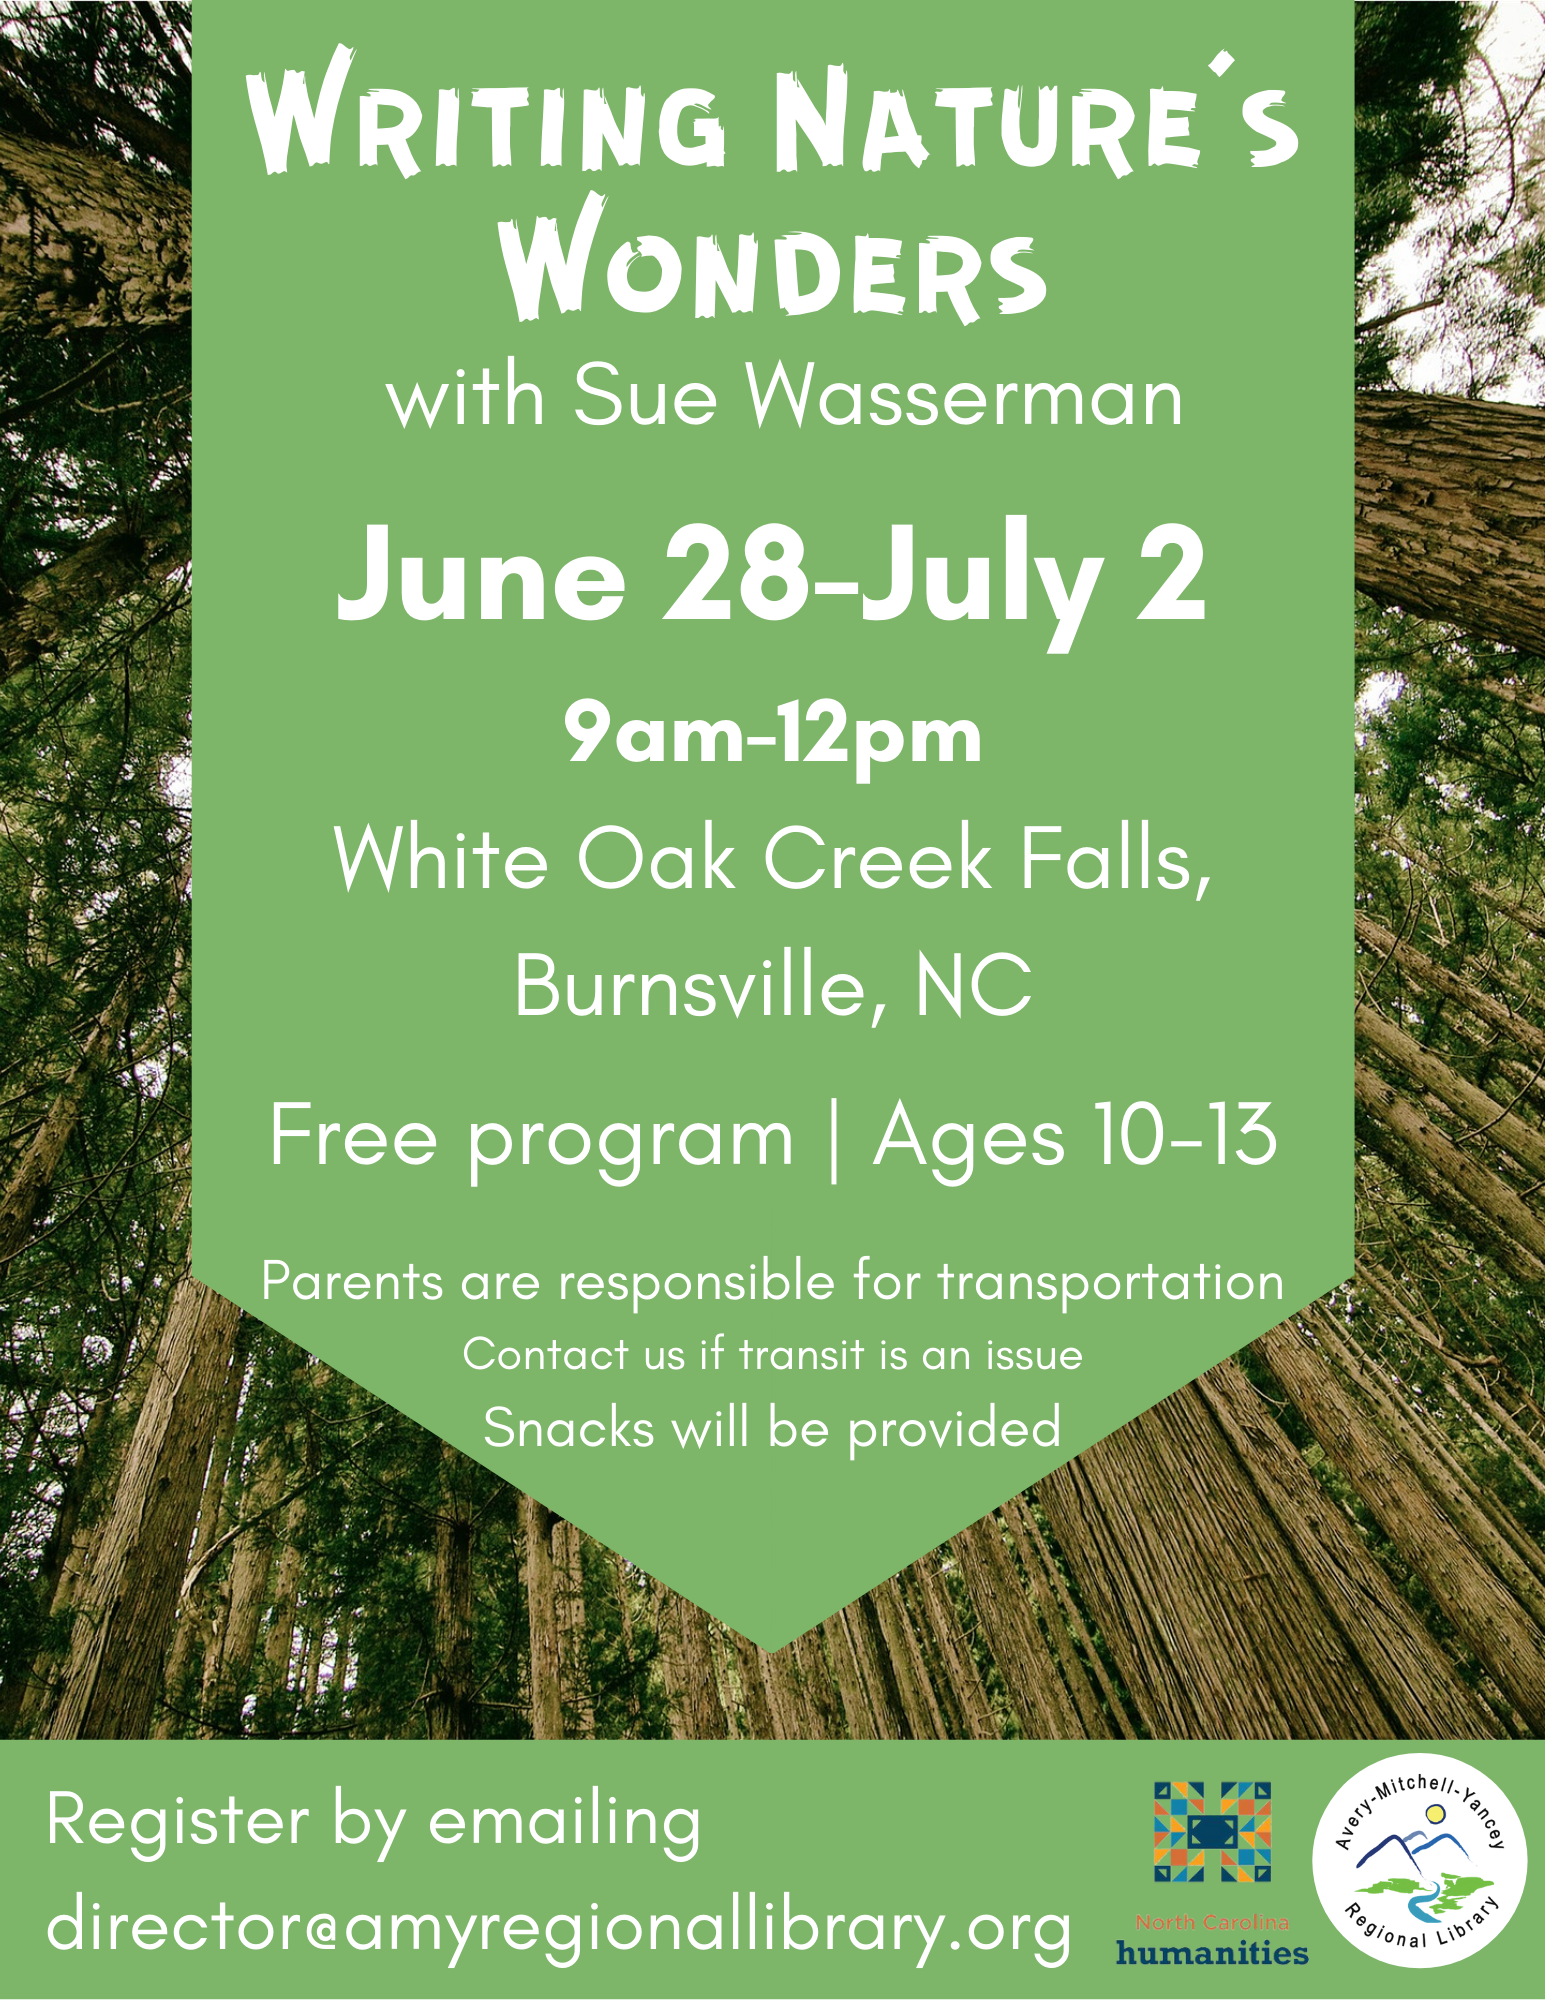 Image of a green flag with Writing Nature's Wonders written on it and detailing the program is June 28-July 2